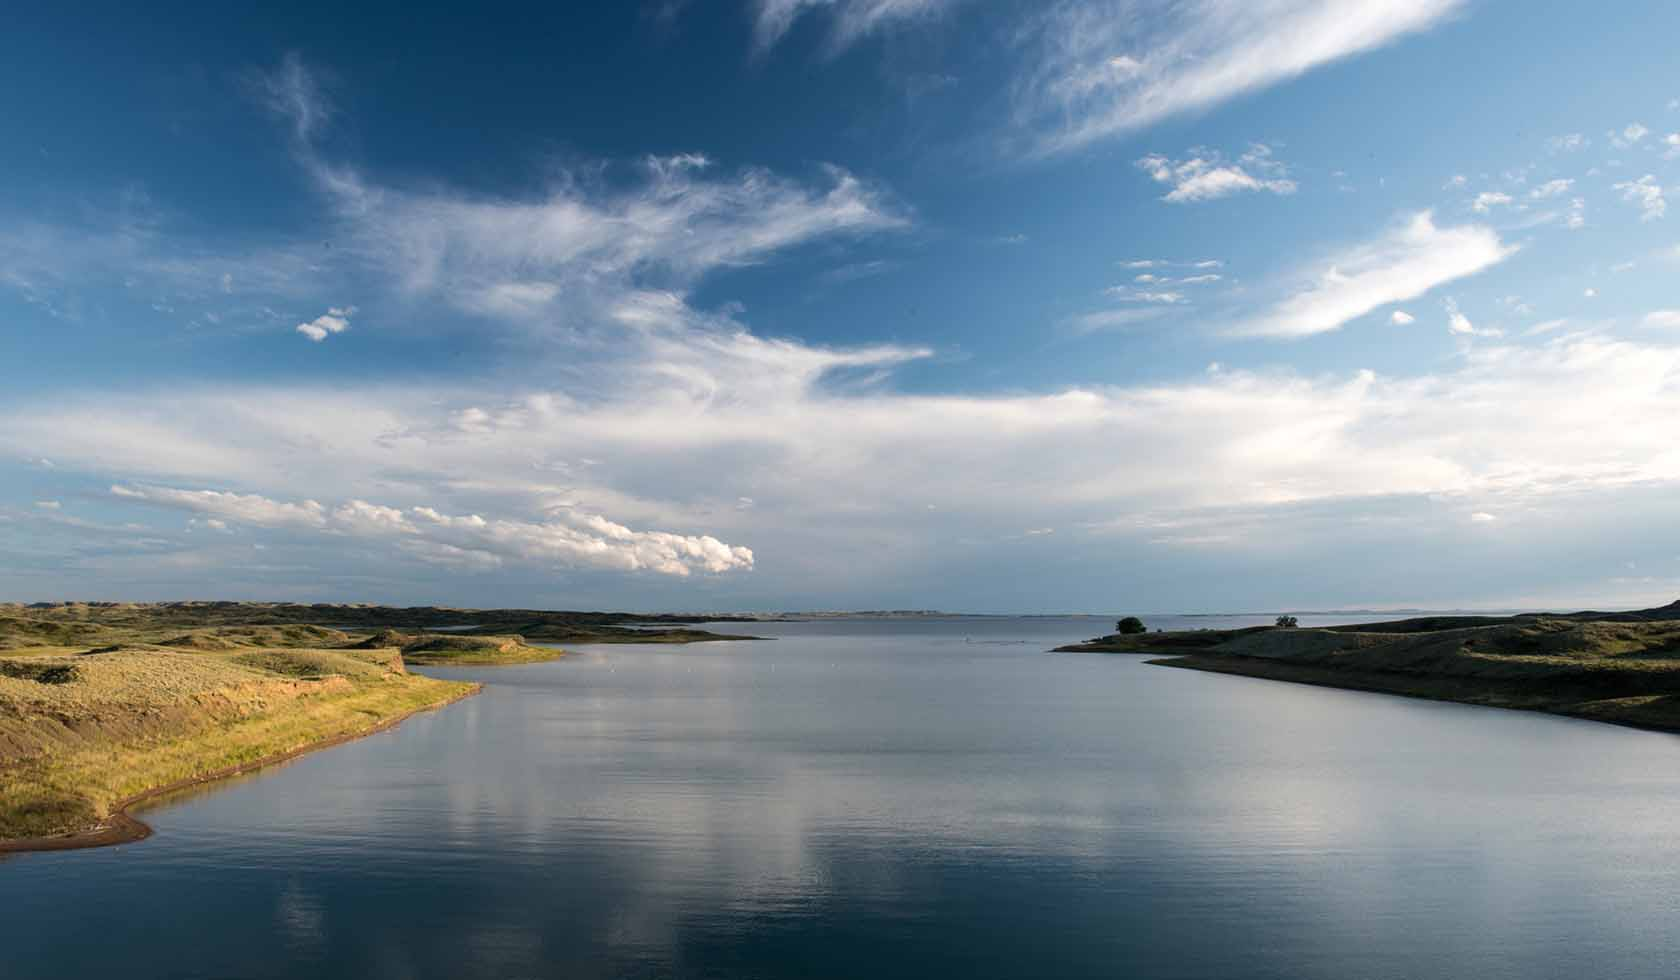 Fort Peck Lake Reservoir and Recreation Area | Missouri River Country